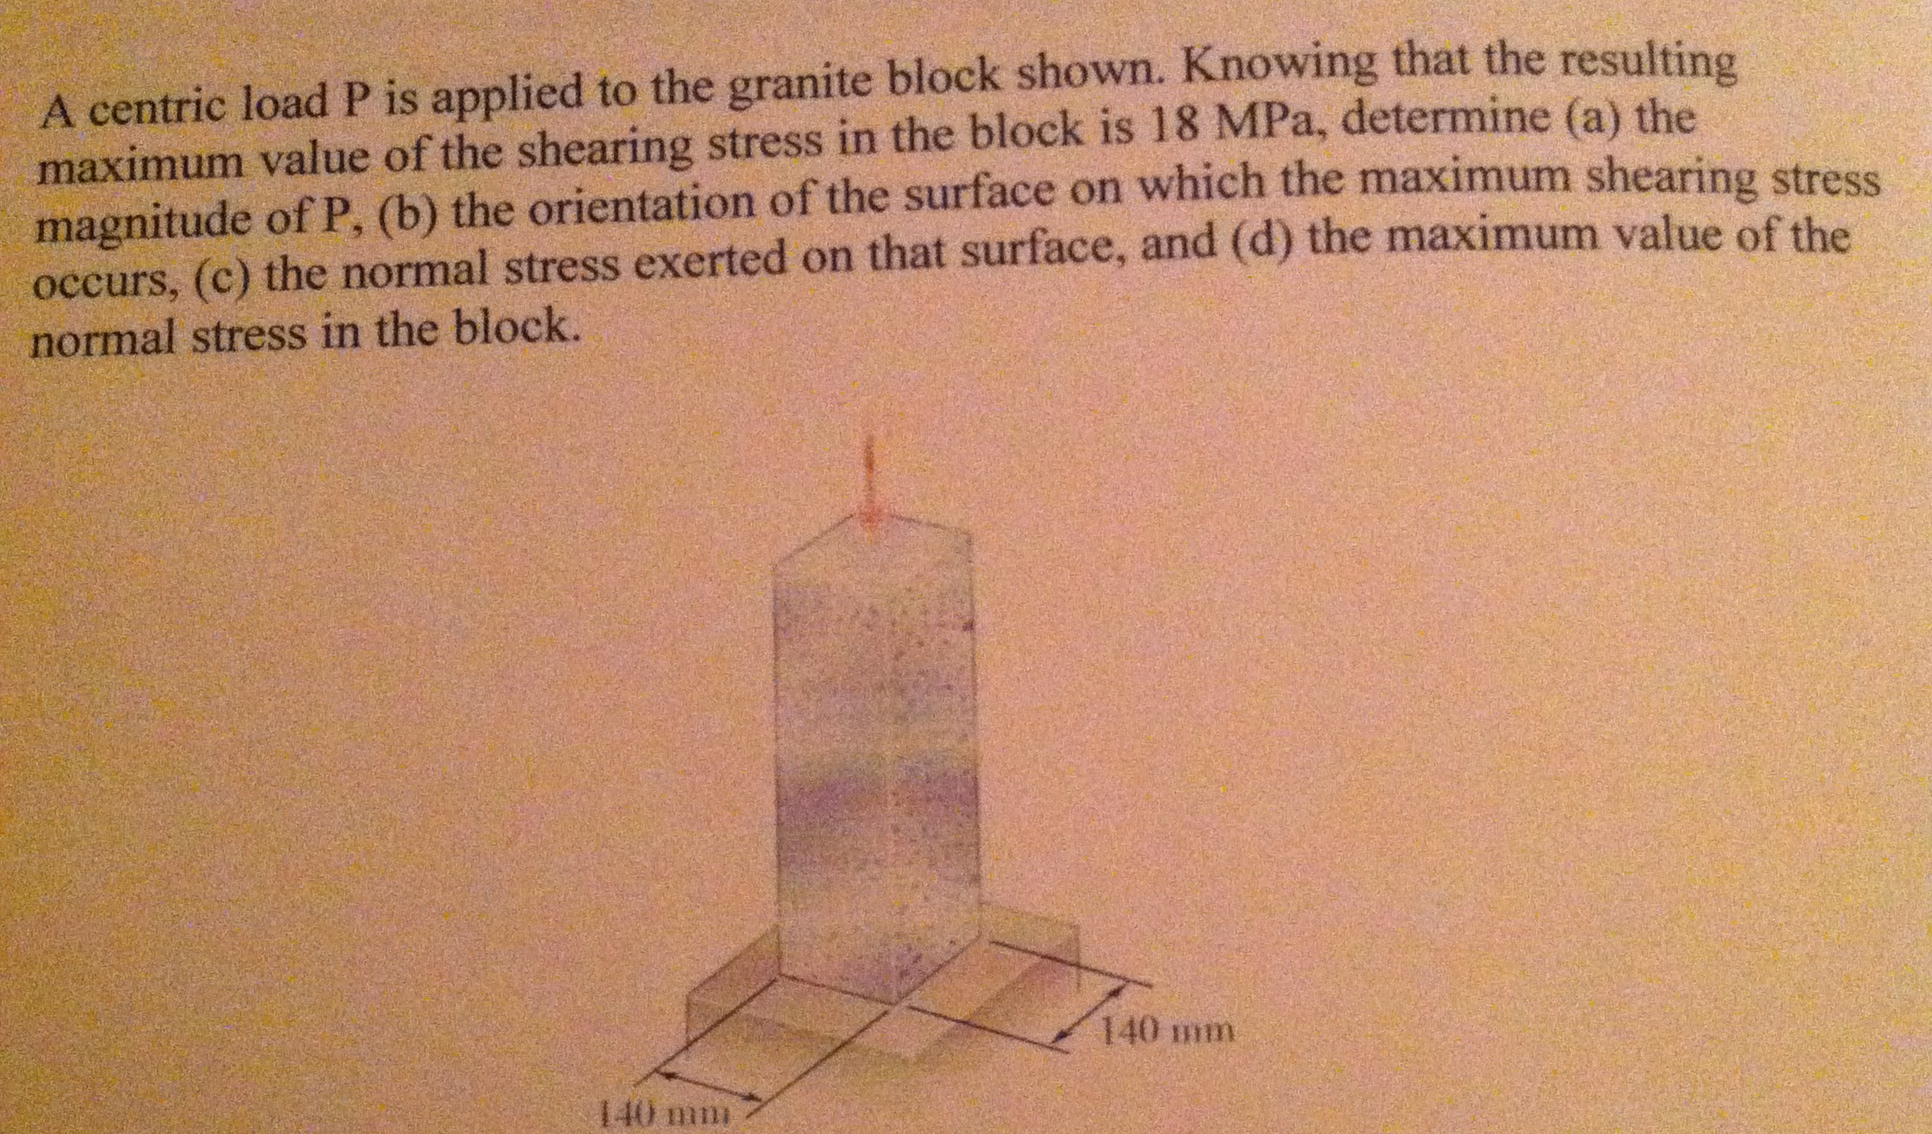 A centric load P is applied to the granite block s